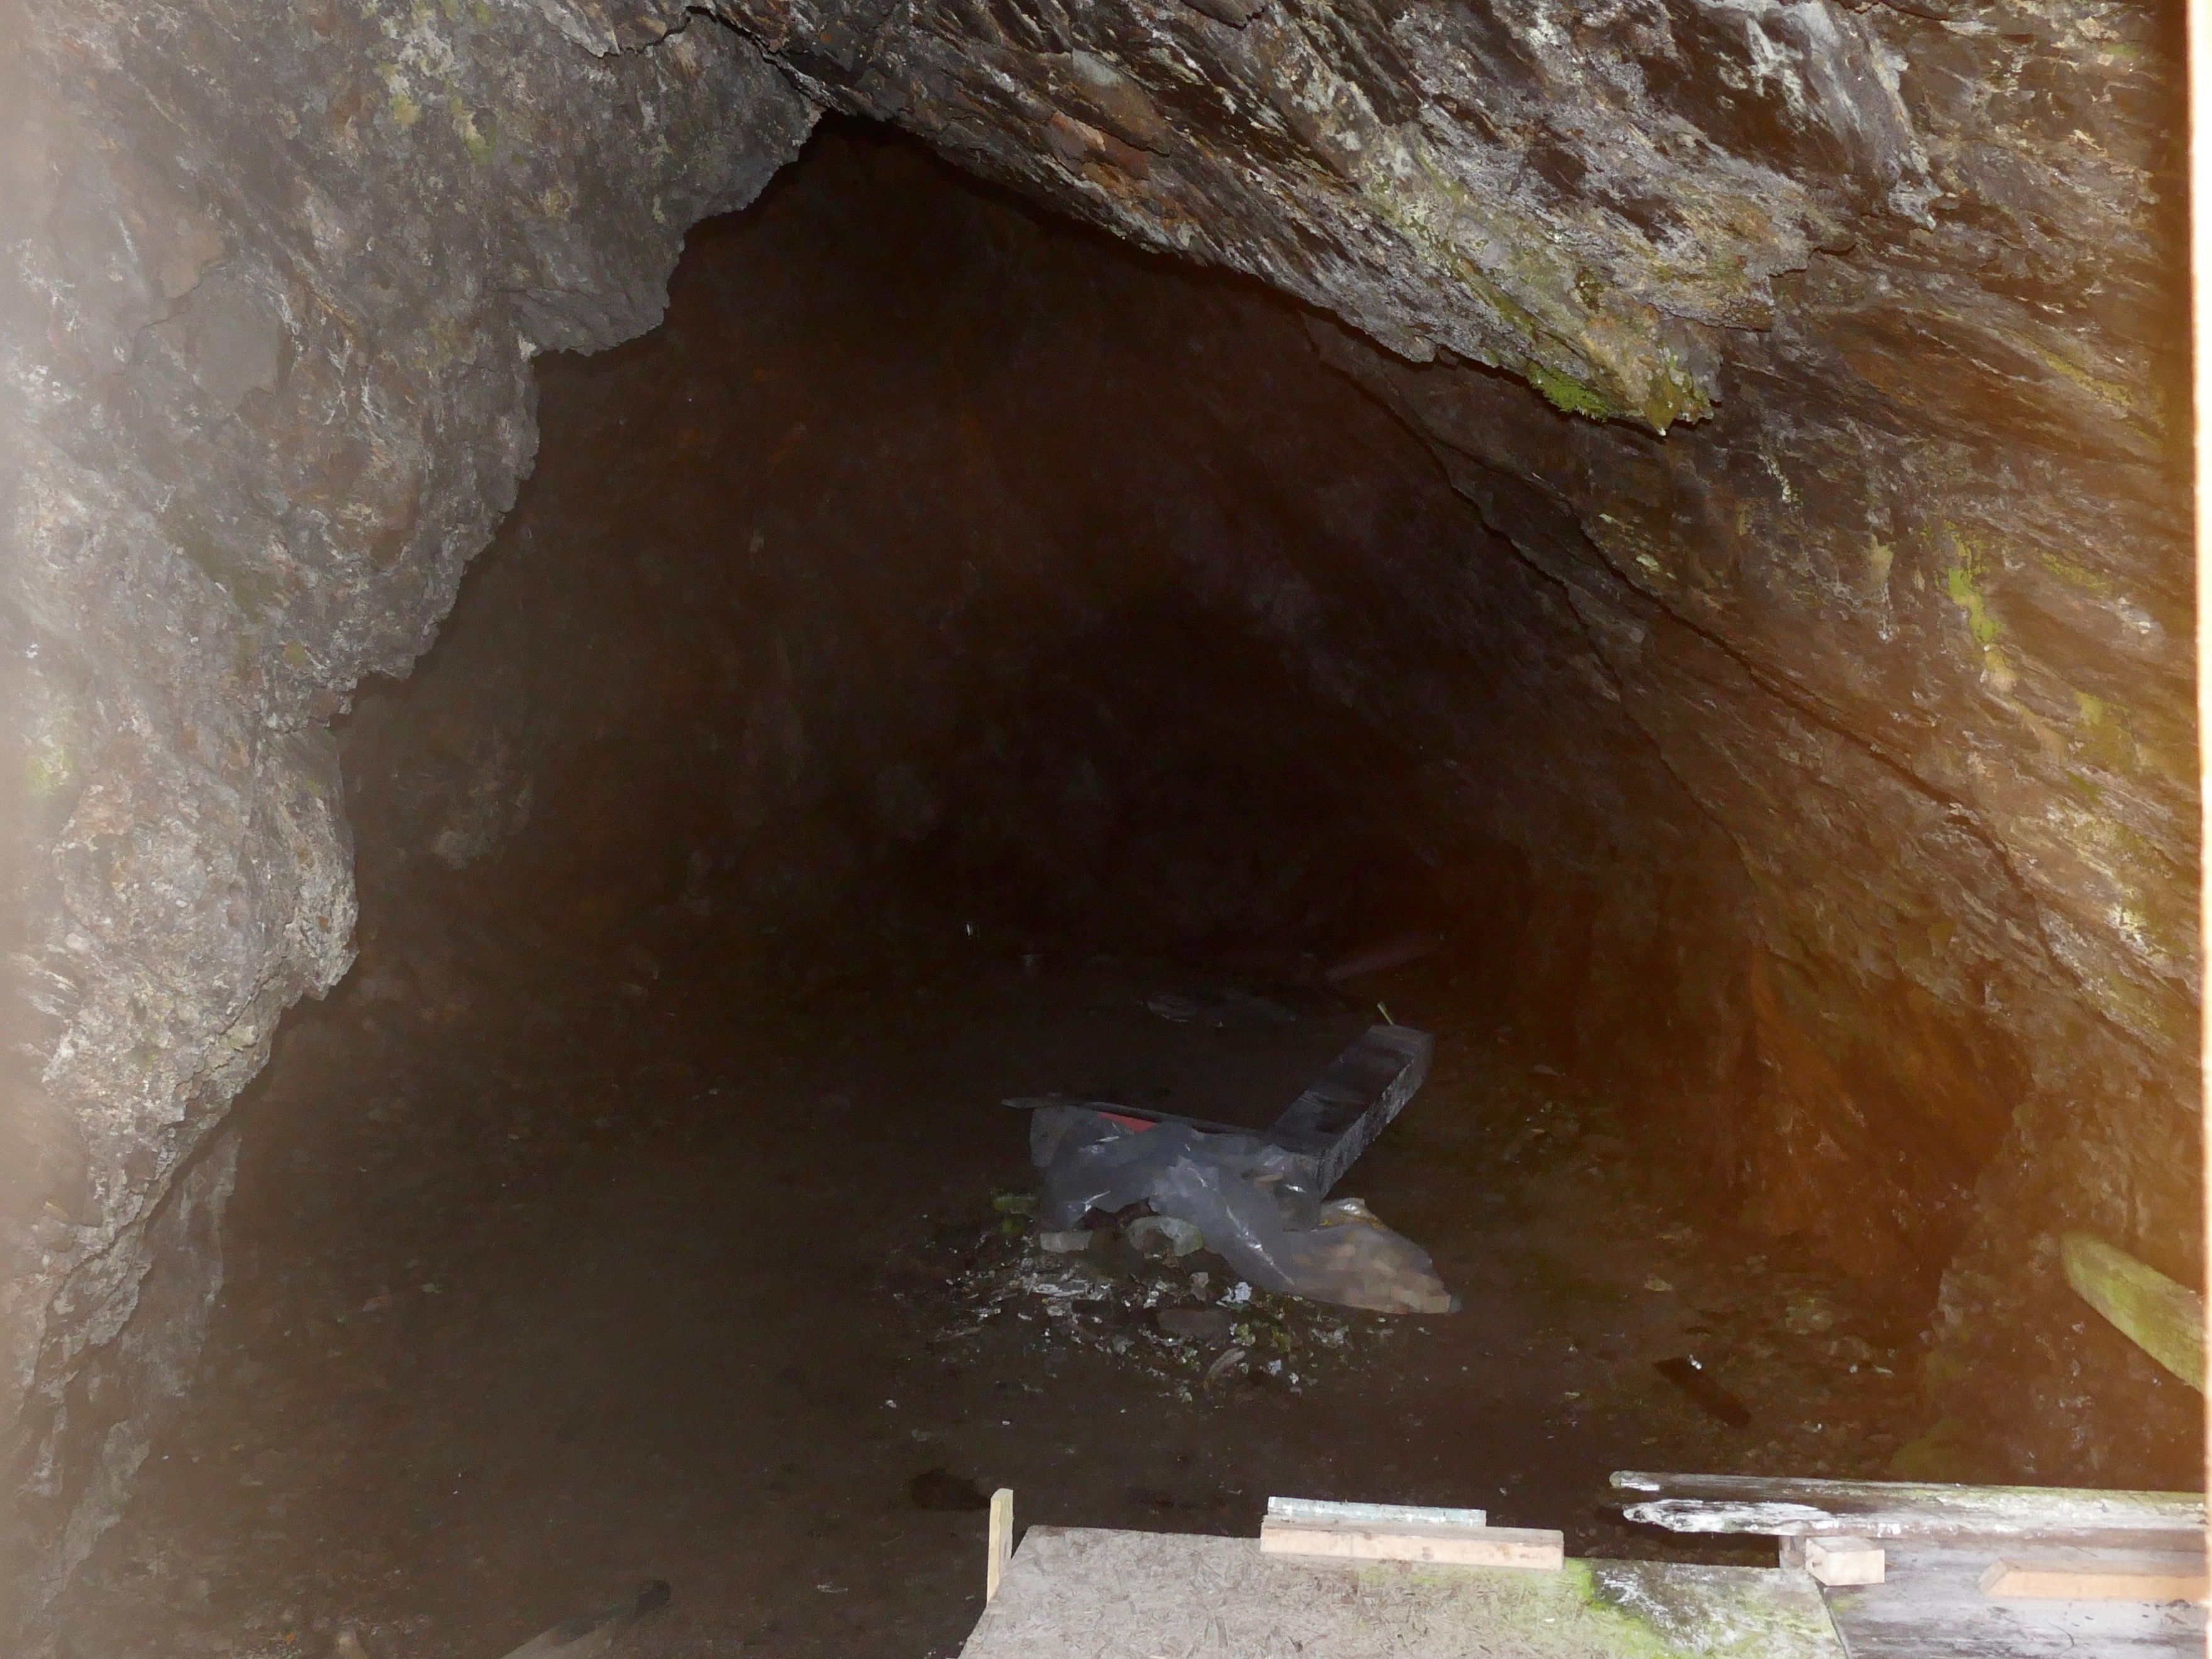 Sealers' cave at Maiviken